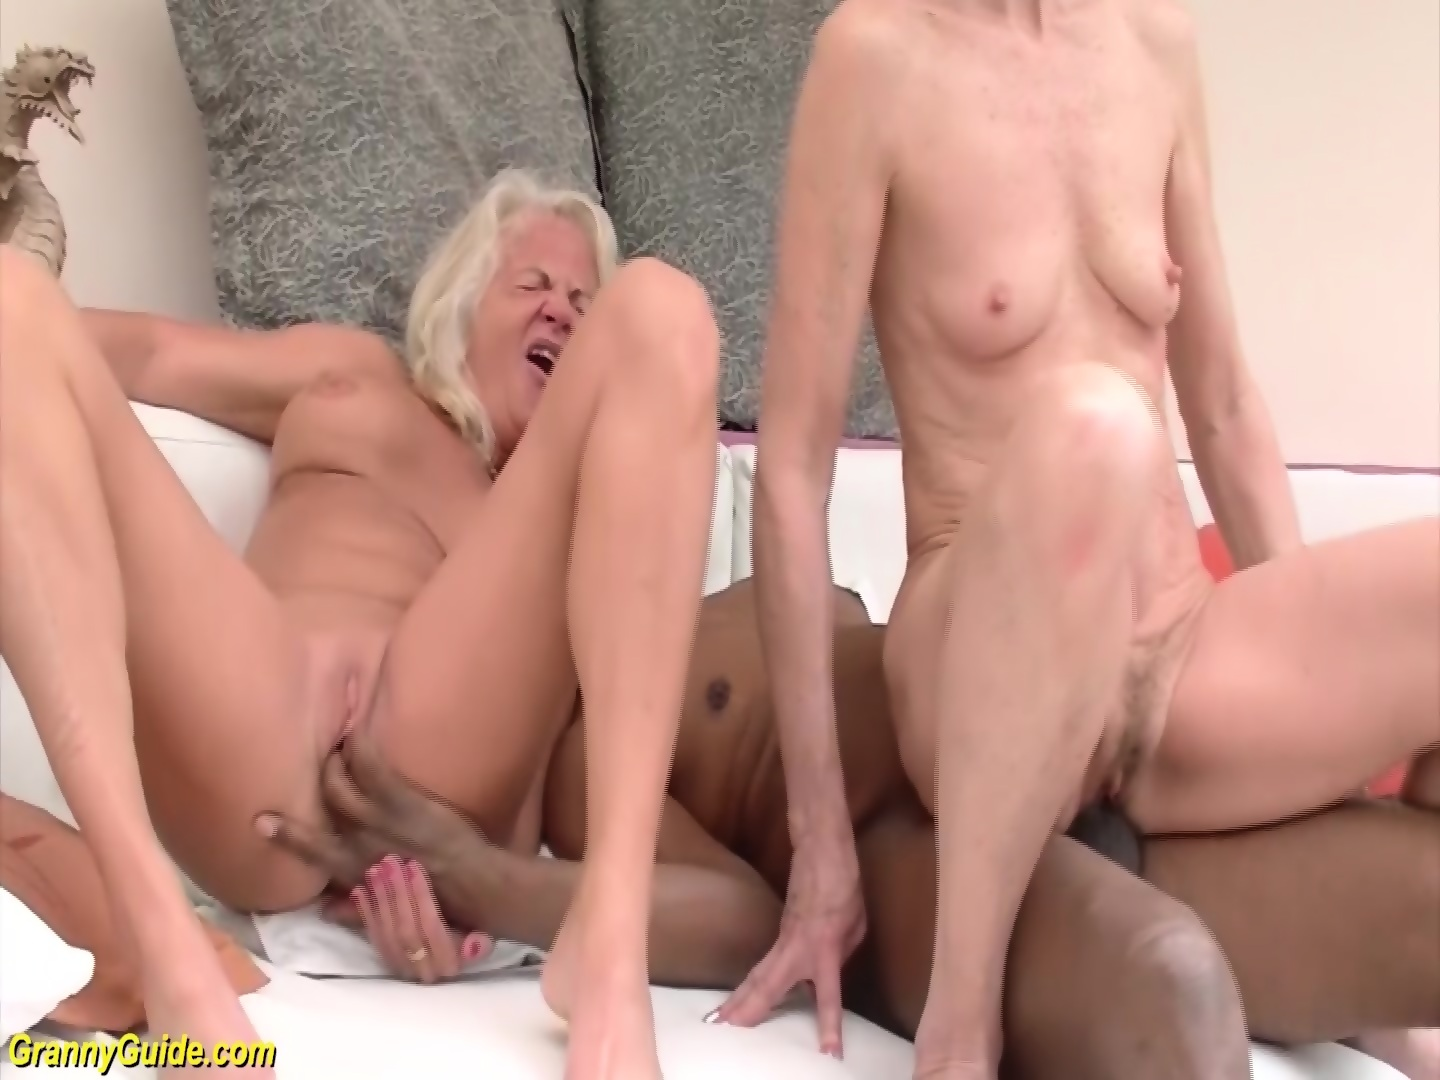 Porn Granny Orgy showing porn images for granny s yacht orgy porn | www